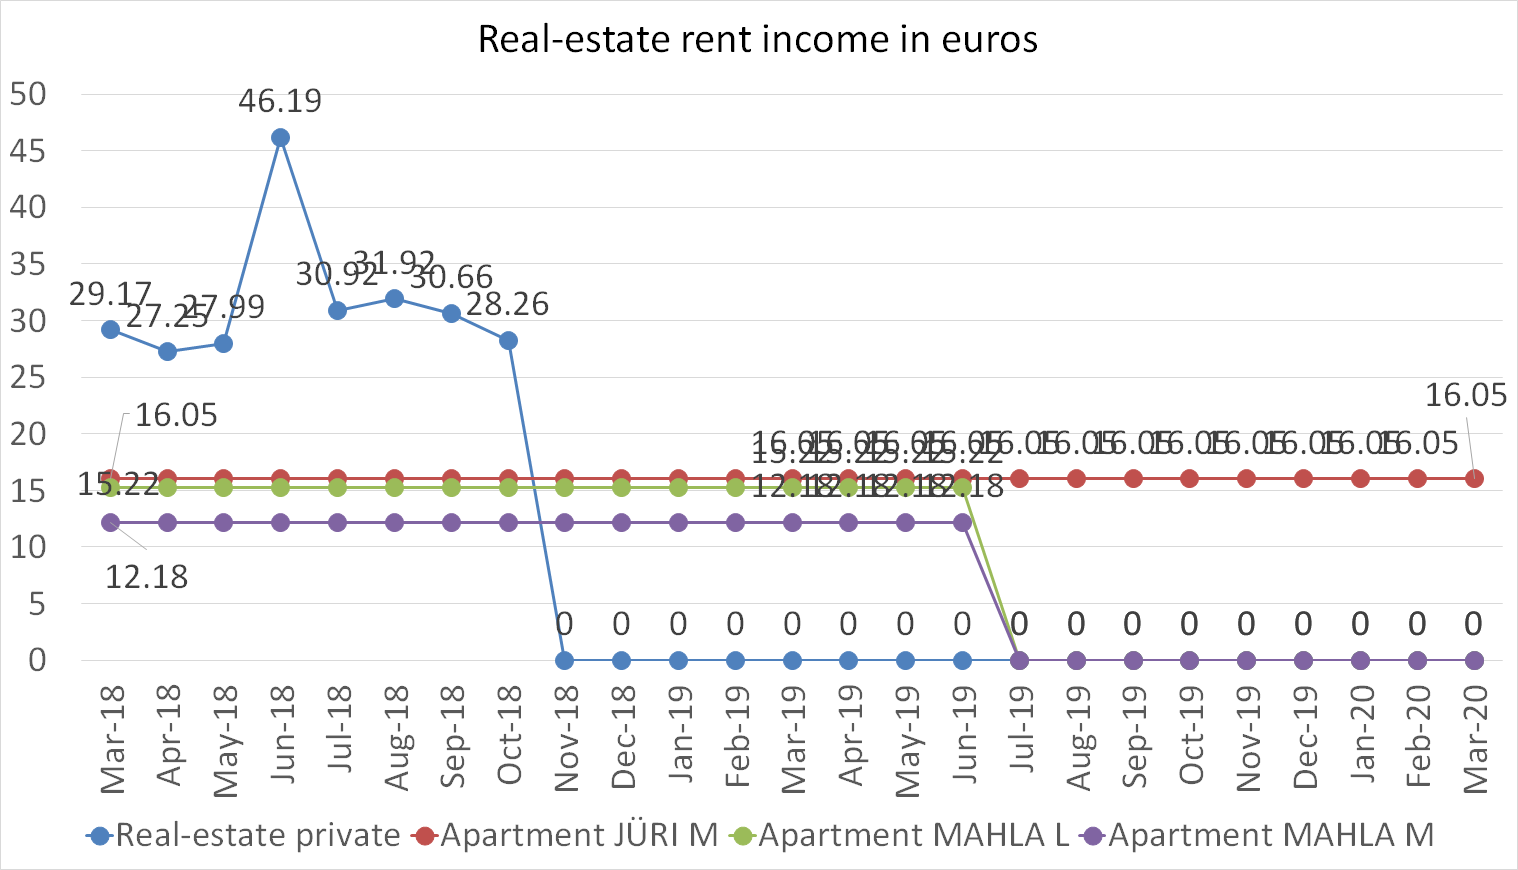 Real-estate rent income in euros in march 2020